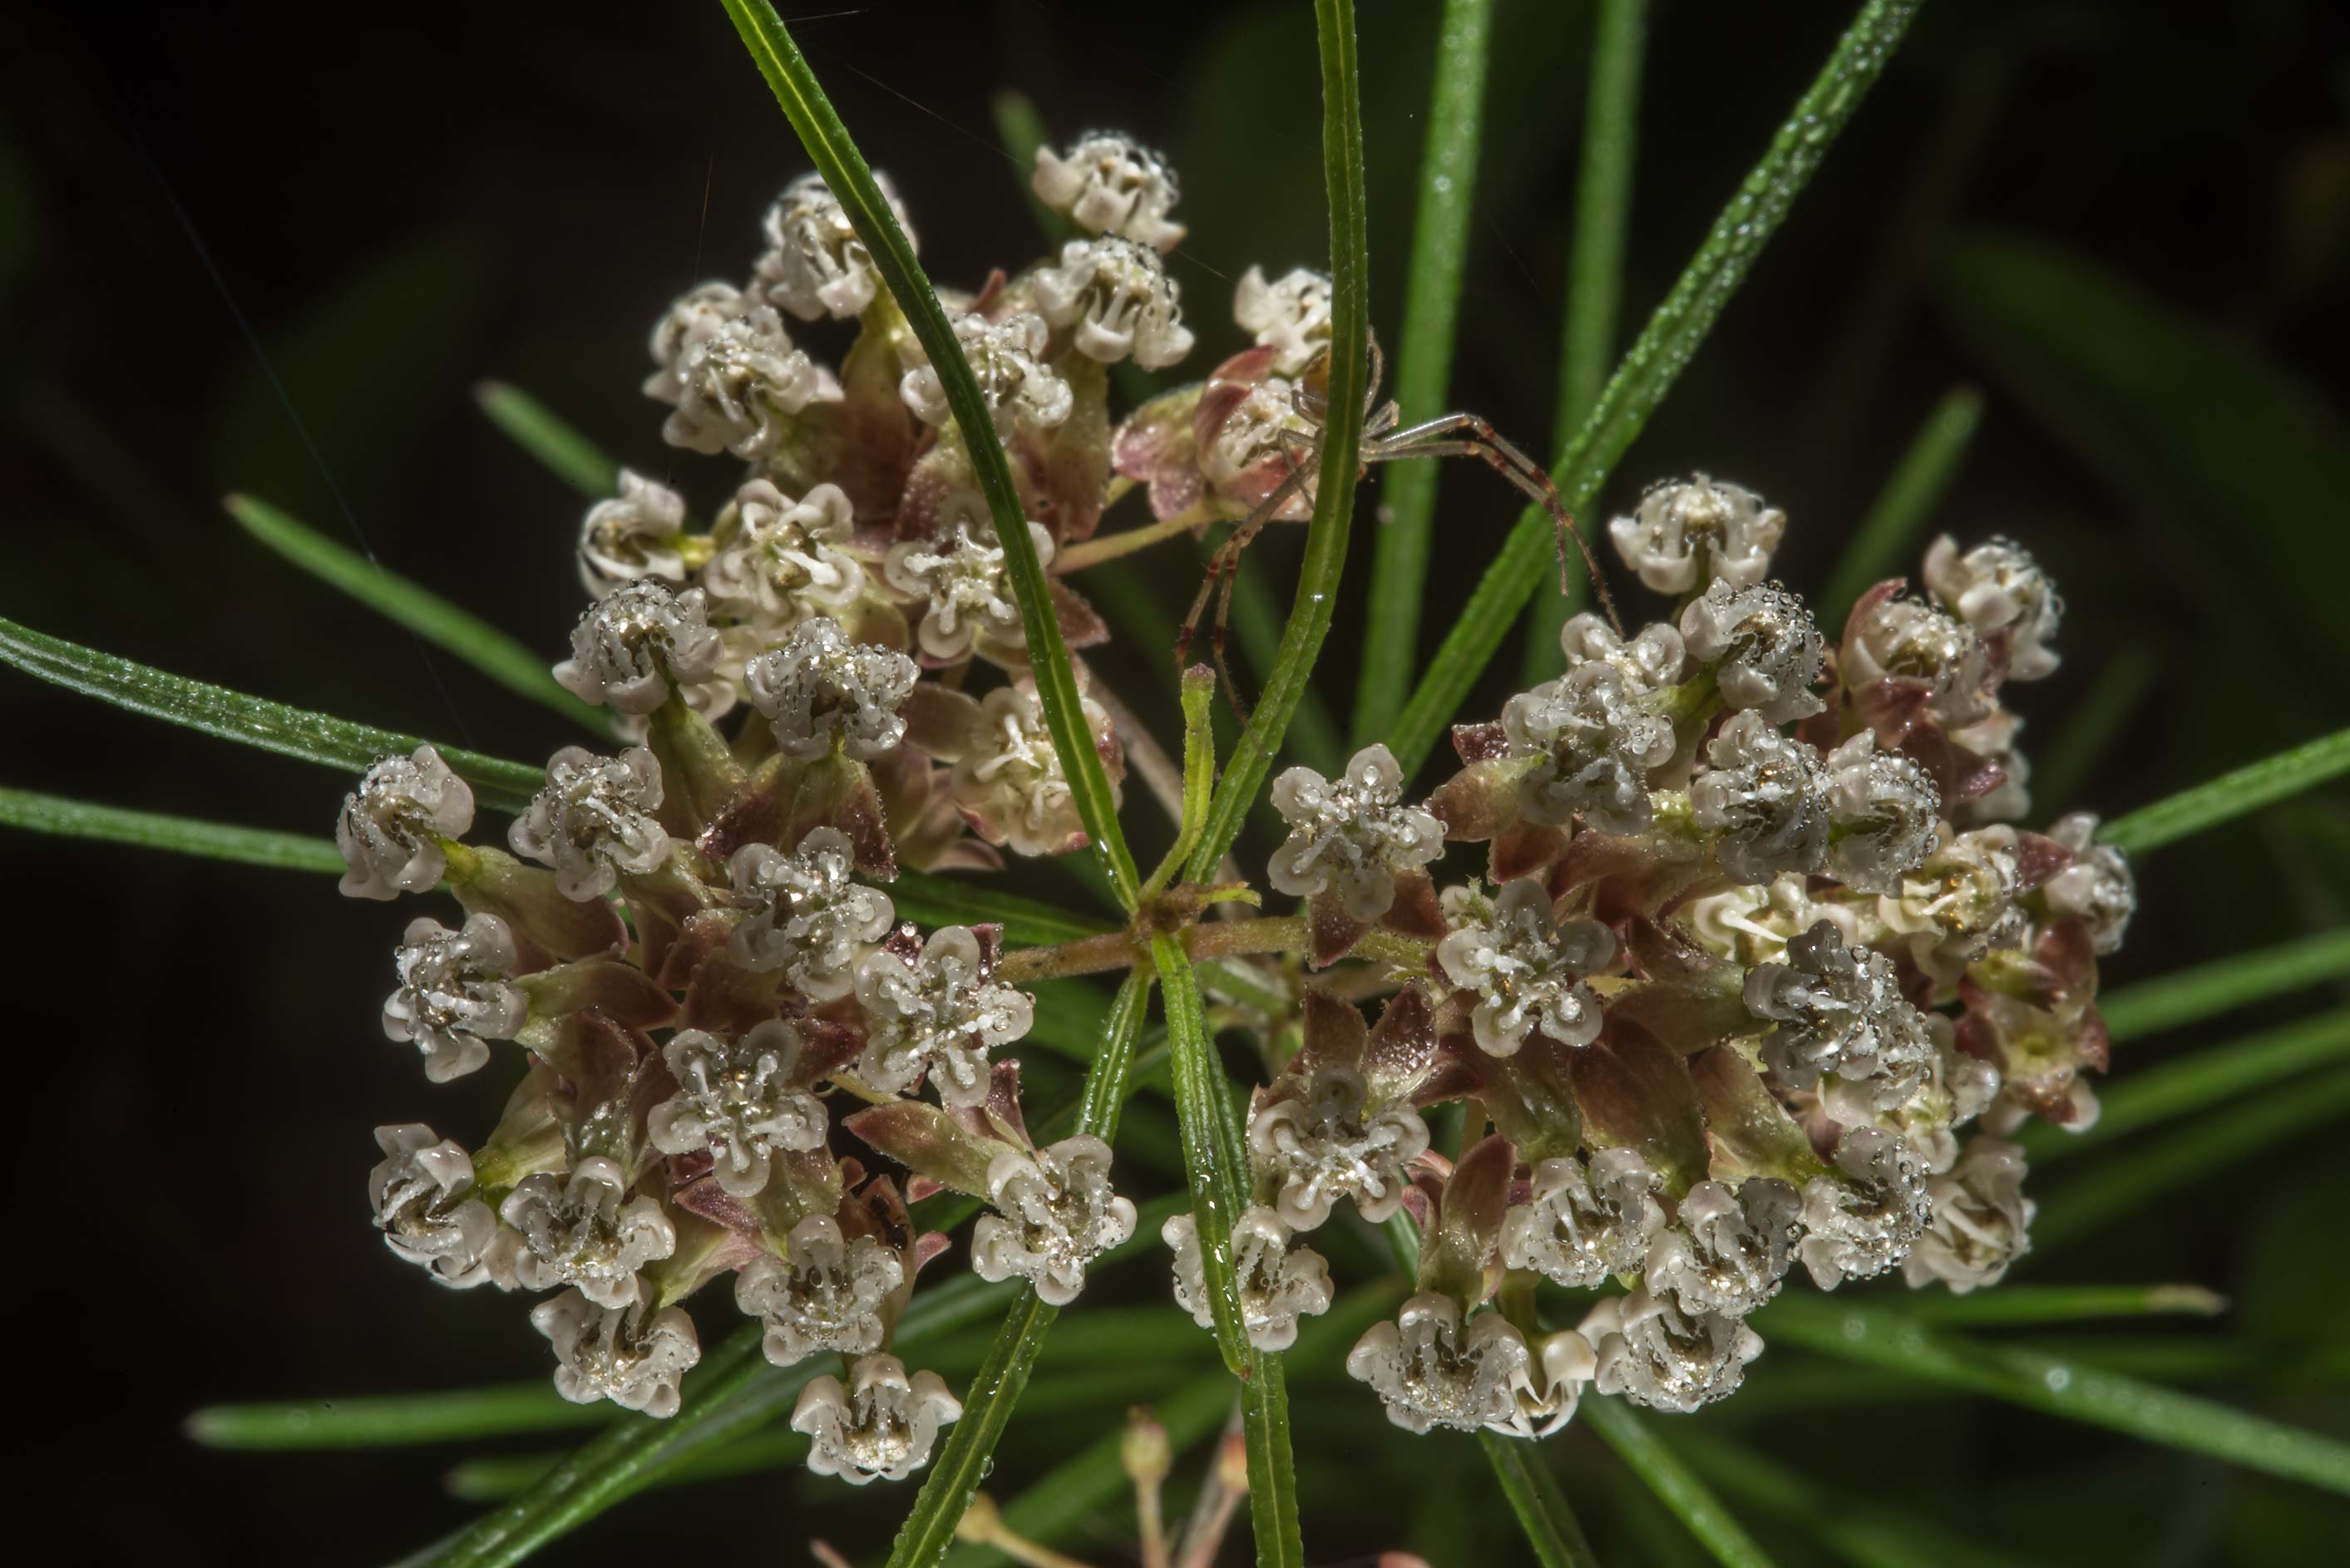 Flowers of whorled milkweed (Asclepias...of Somerville Lake State Park. Texas